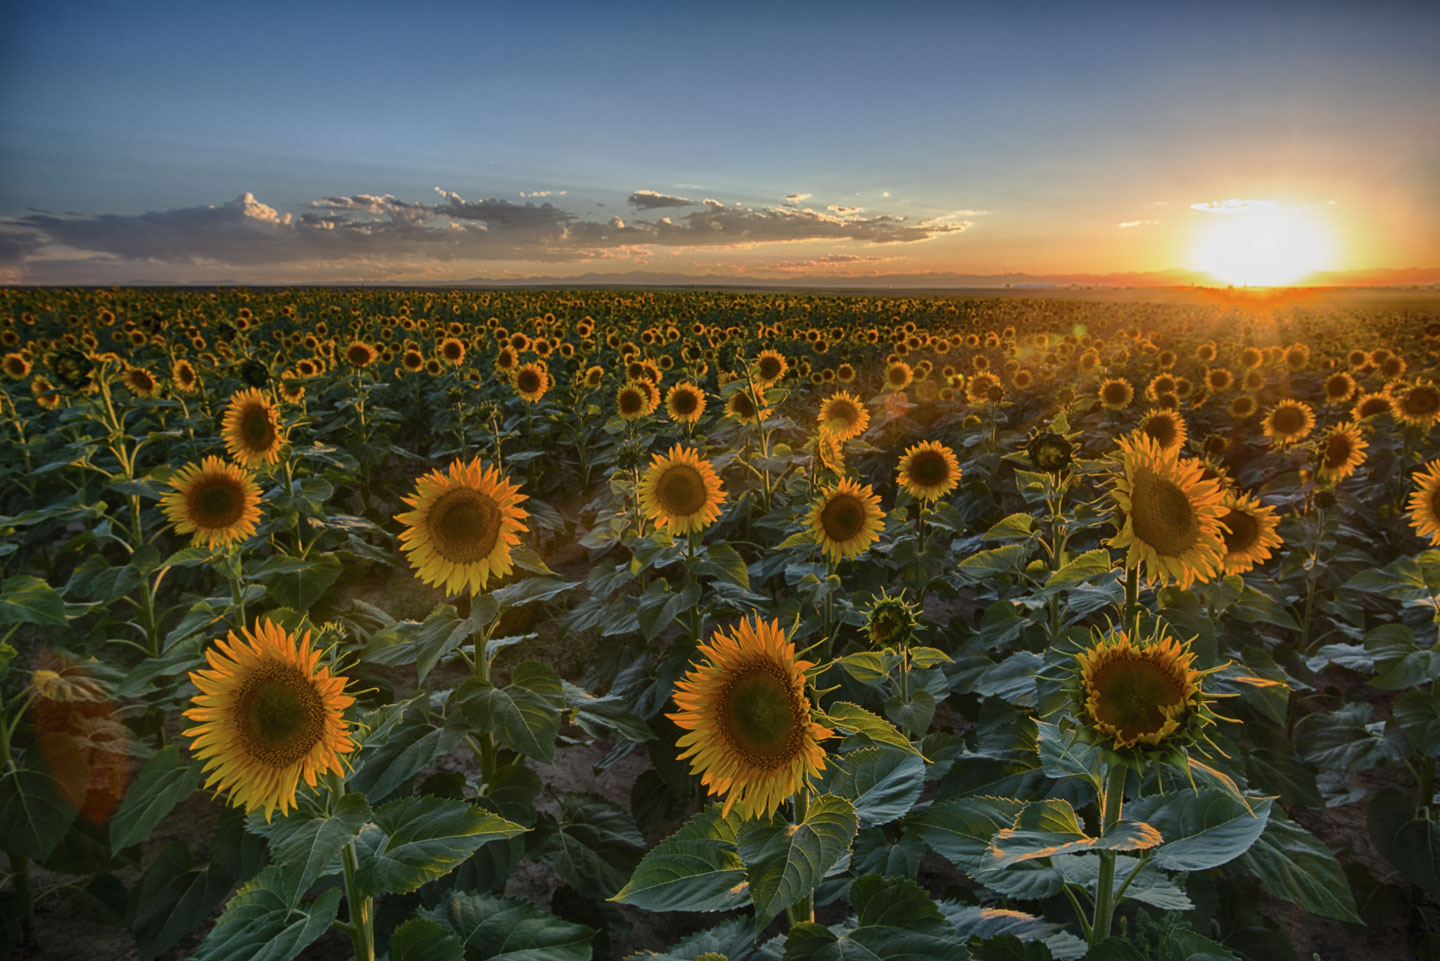 sunflowers-sunset.jpg